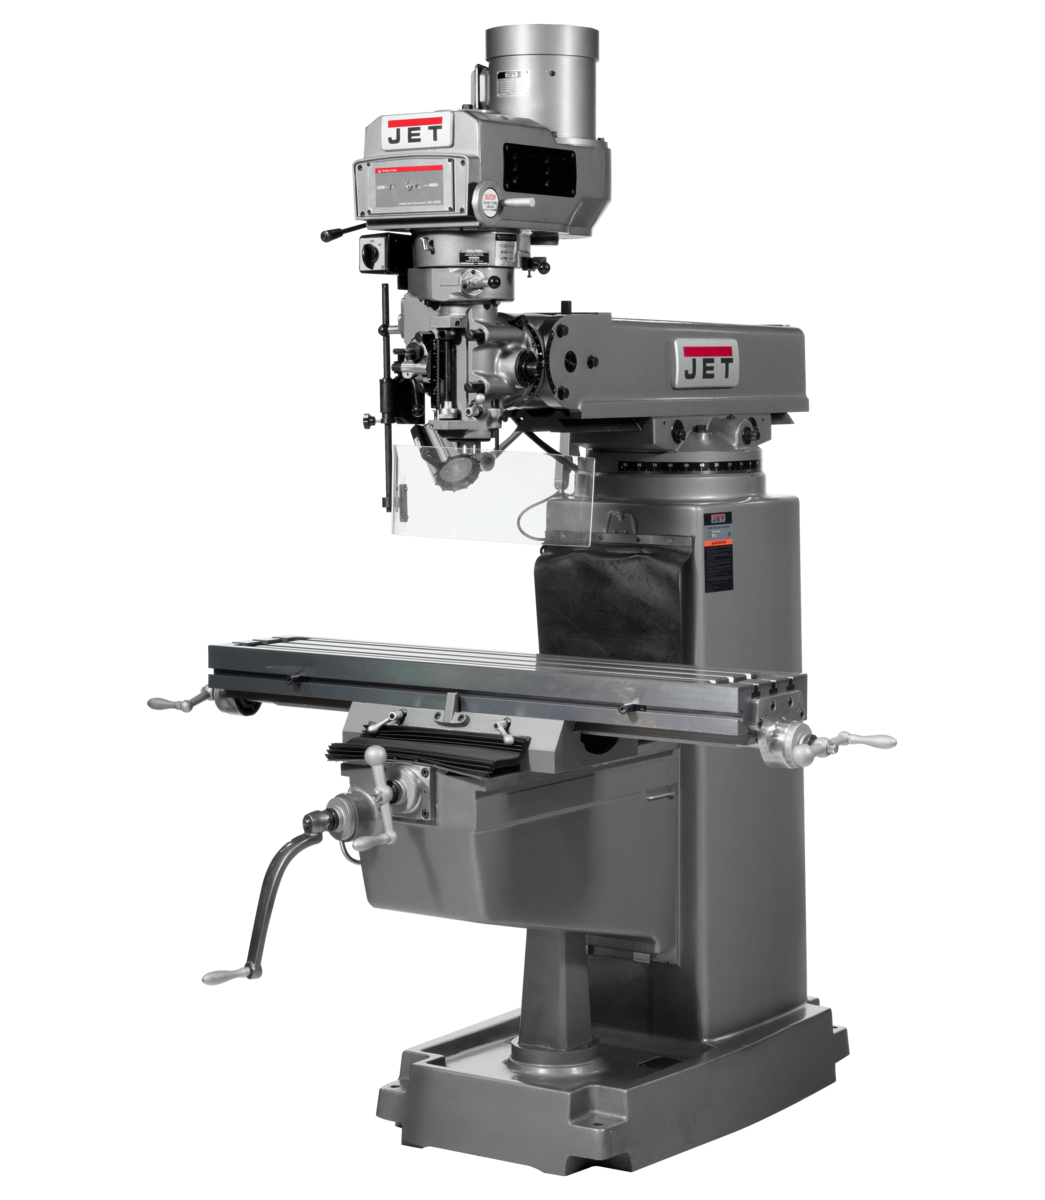 JTM-1050VS2 Mill With ACU-RITE 303 DRO With X and Y-Axis Powerfeeds